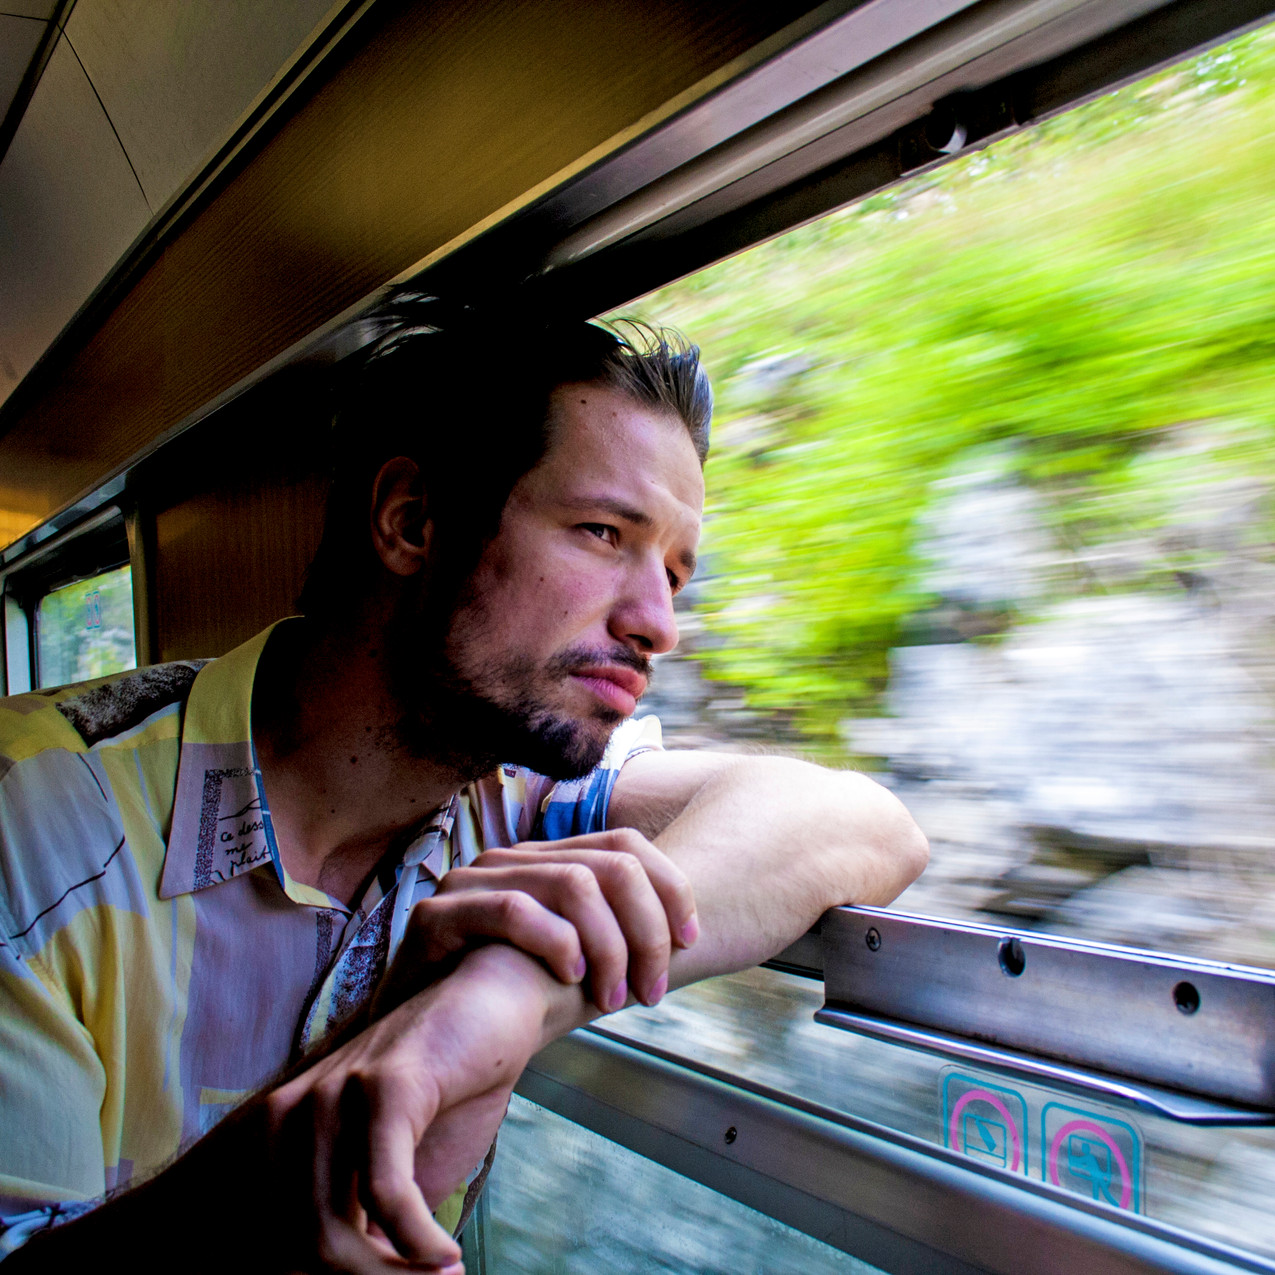 We shared a cabin with Ivan travelling to Slovenia, he gave us plenty of tips that really helped!